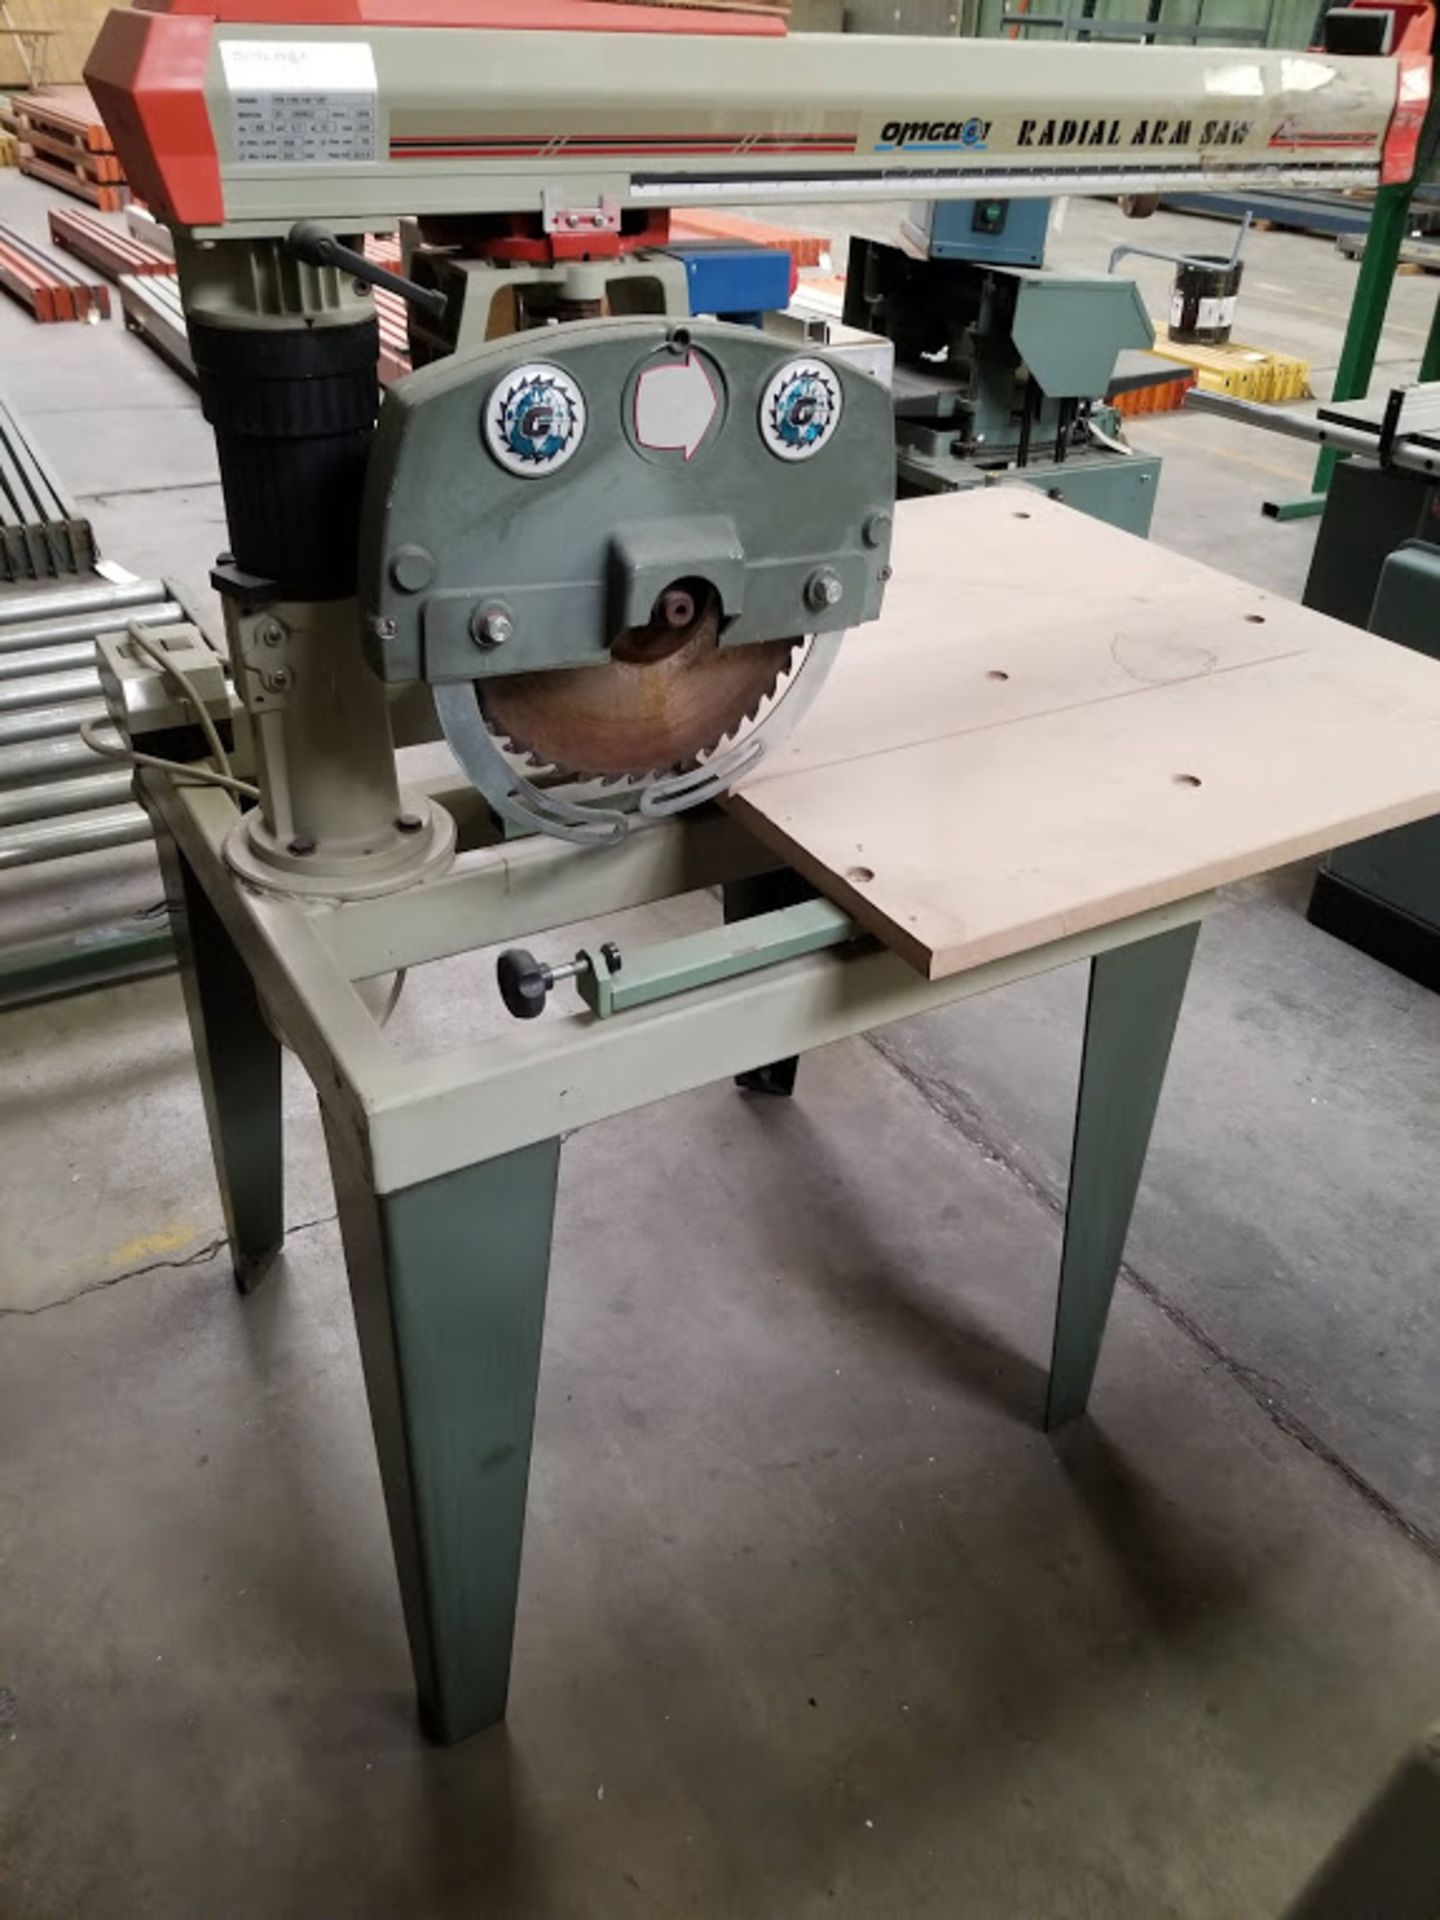 "Lot 16 - Omga 14"" Radial Arm Saw, # RN700, 230 Volts 3phase Motor"